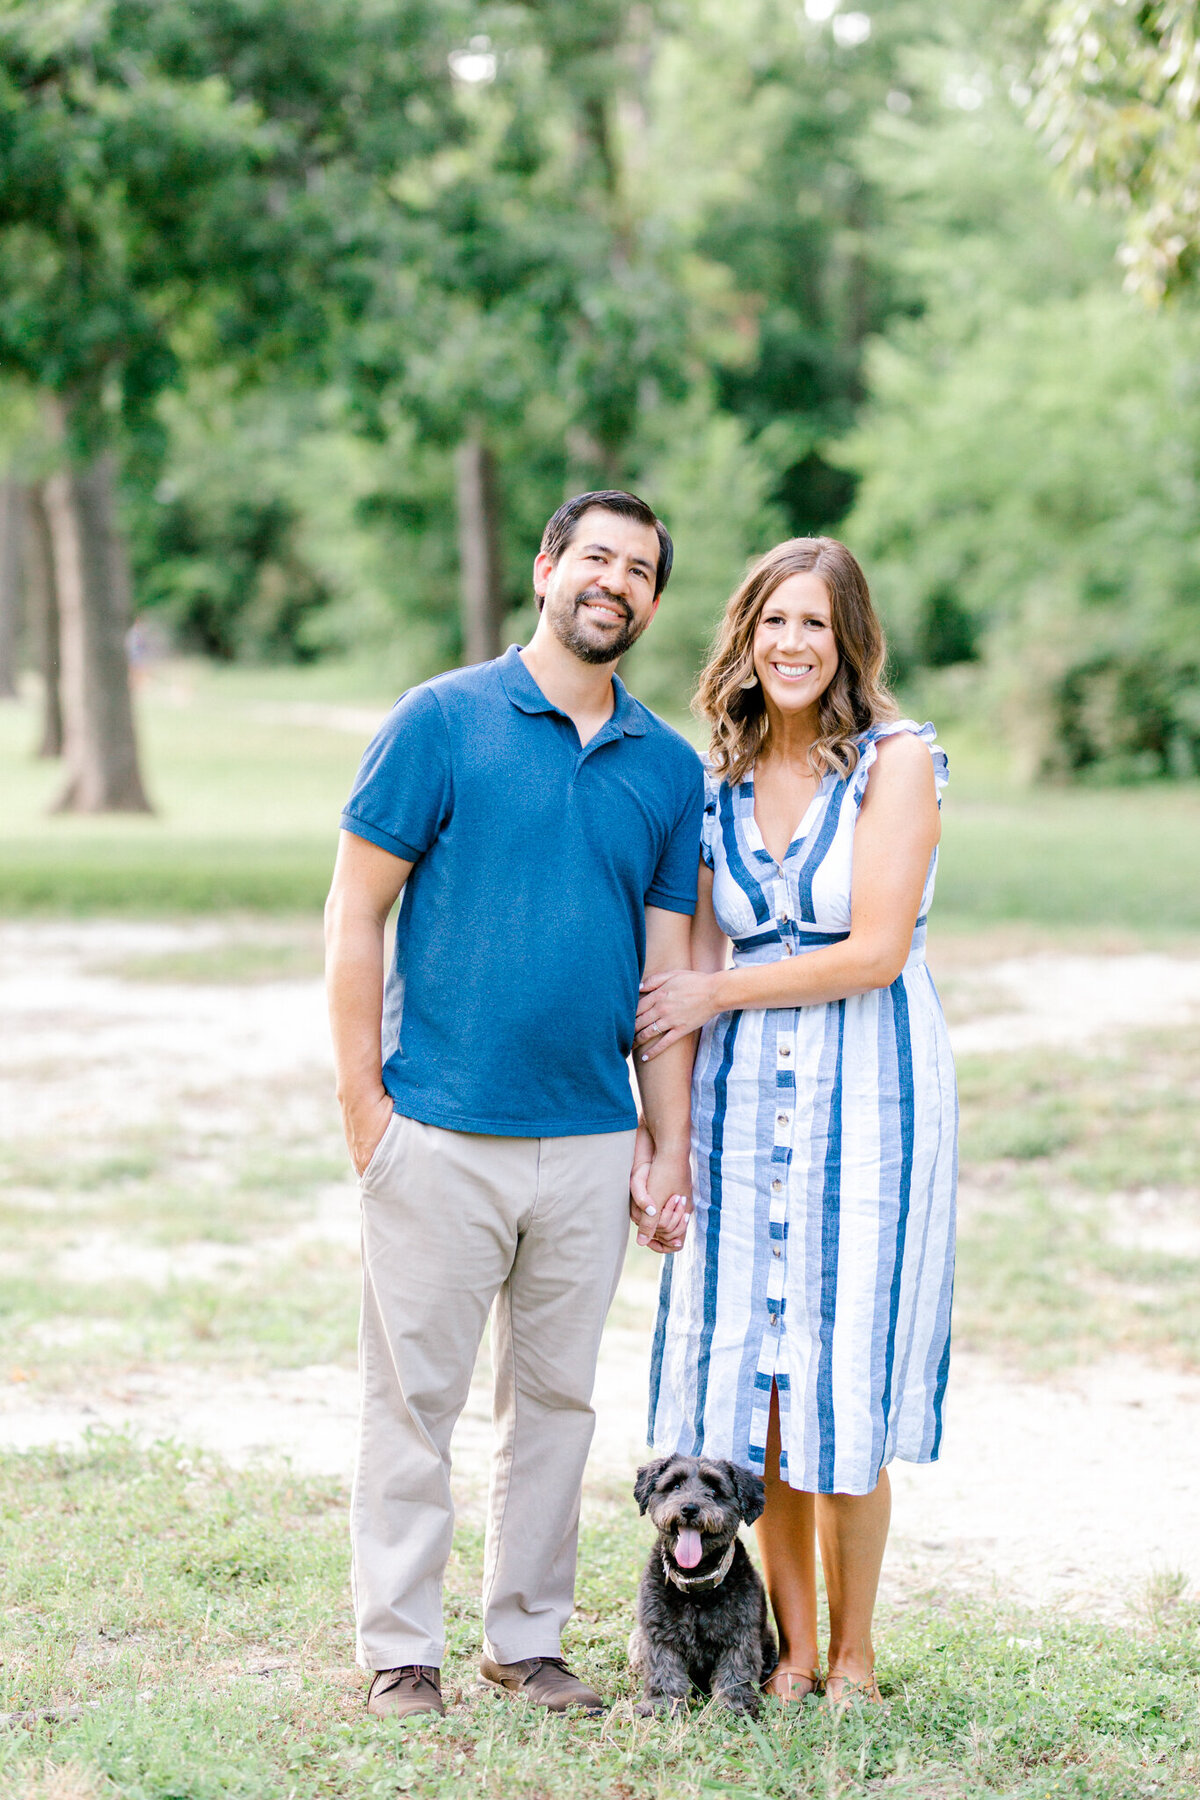 Catherine & Clint Engagement Session at White Rock Lake | Sami Kathryn Photography | Dallas Wedding & Portrait Photographer-4